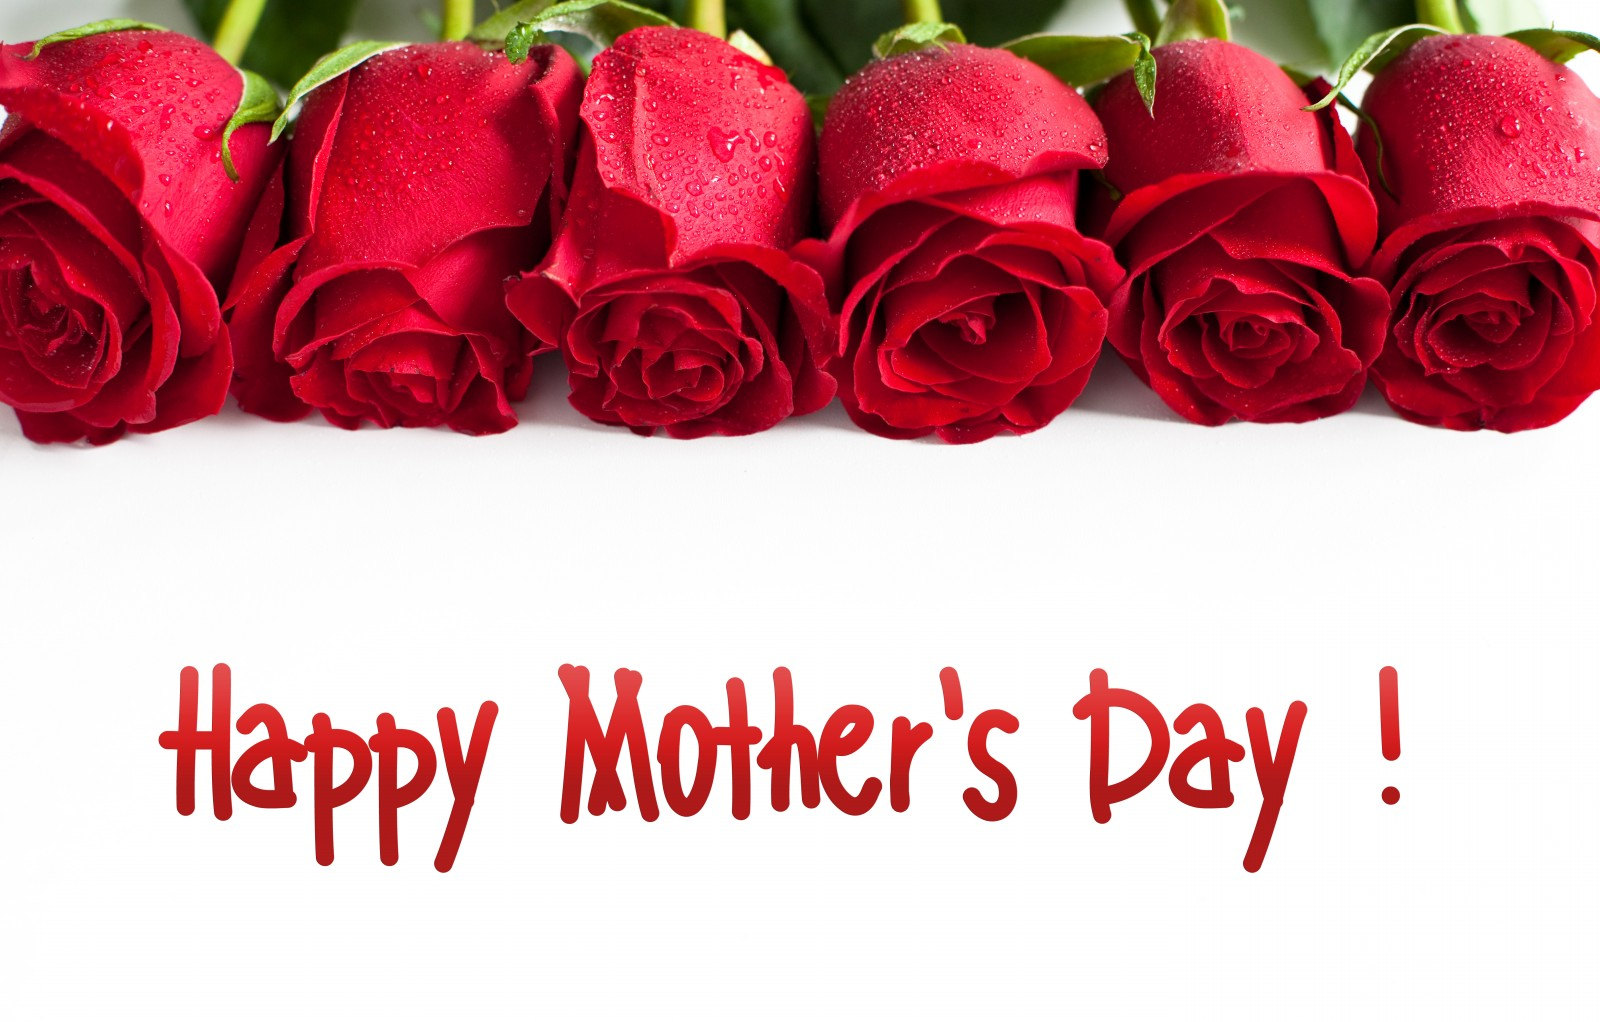 Happy-Mothers-Day-Card-09.jpg